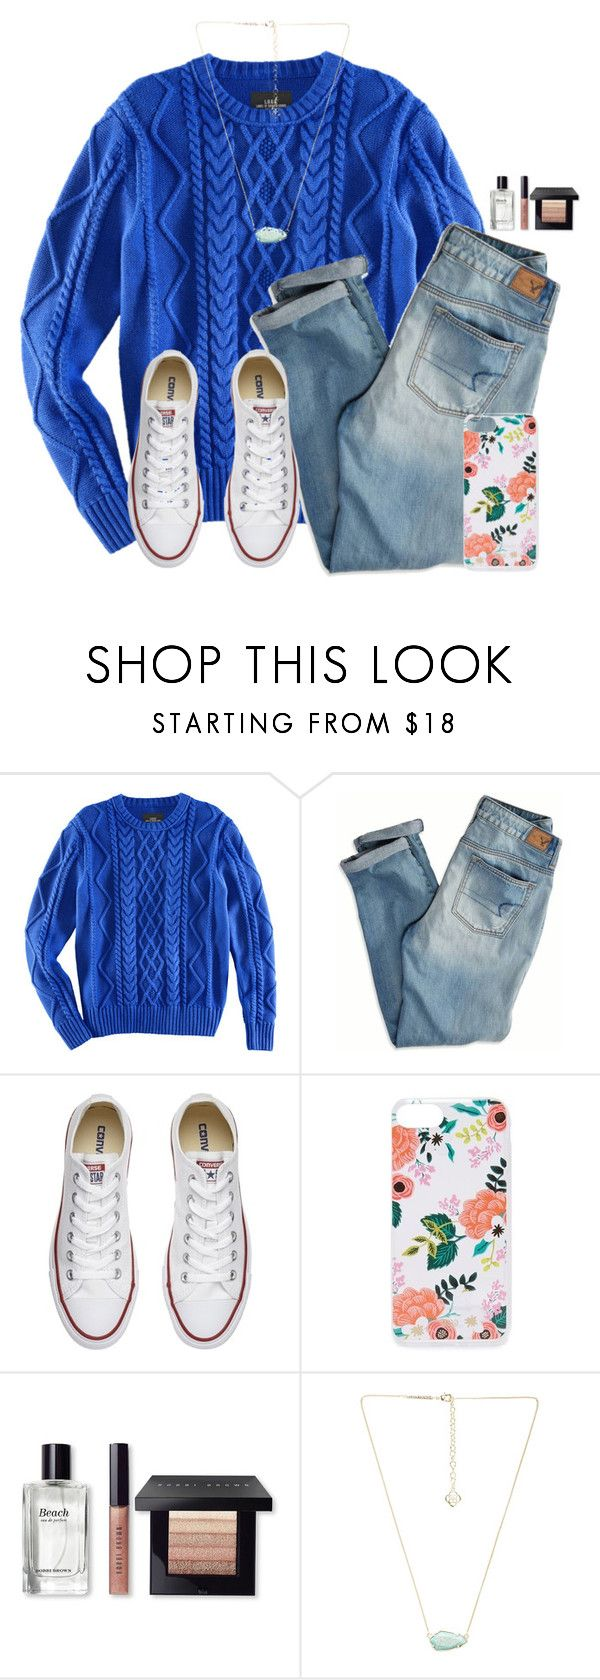 """~flowers are blooming~"" by victoriaann34 ❤ liked on Polyvore featuring H&M, American Eagle Outfitters, Converse, Rifle Paper Co, Bobbi Brown Cosmetics and Kendra Scott"